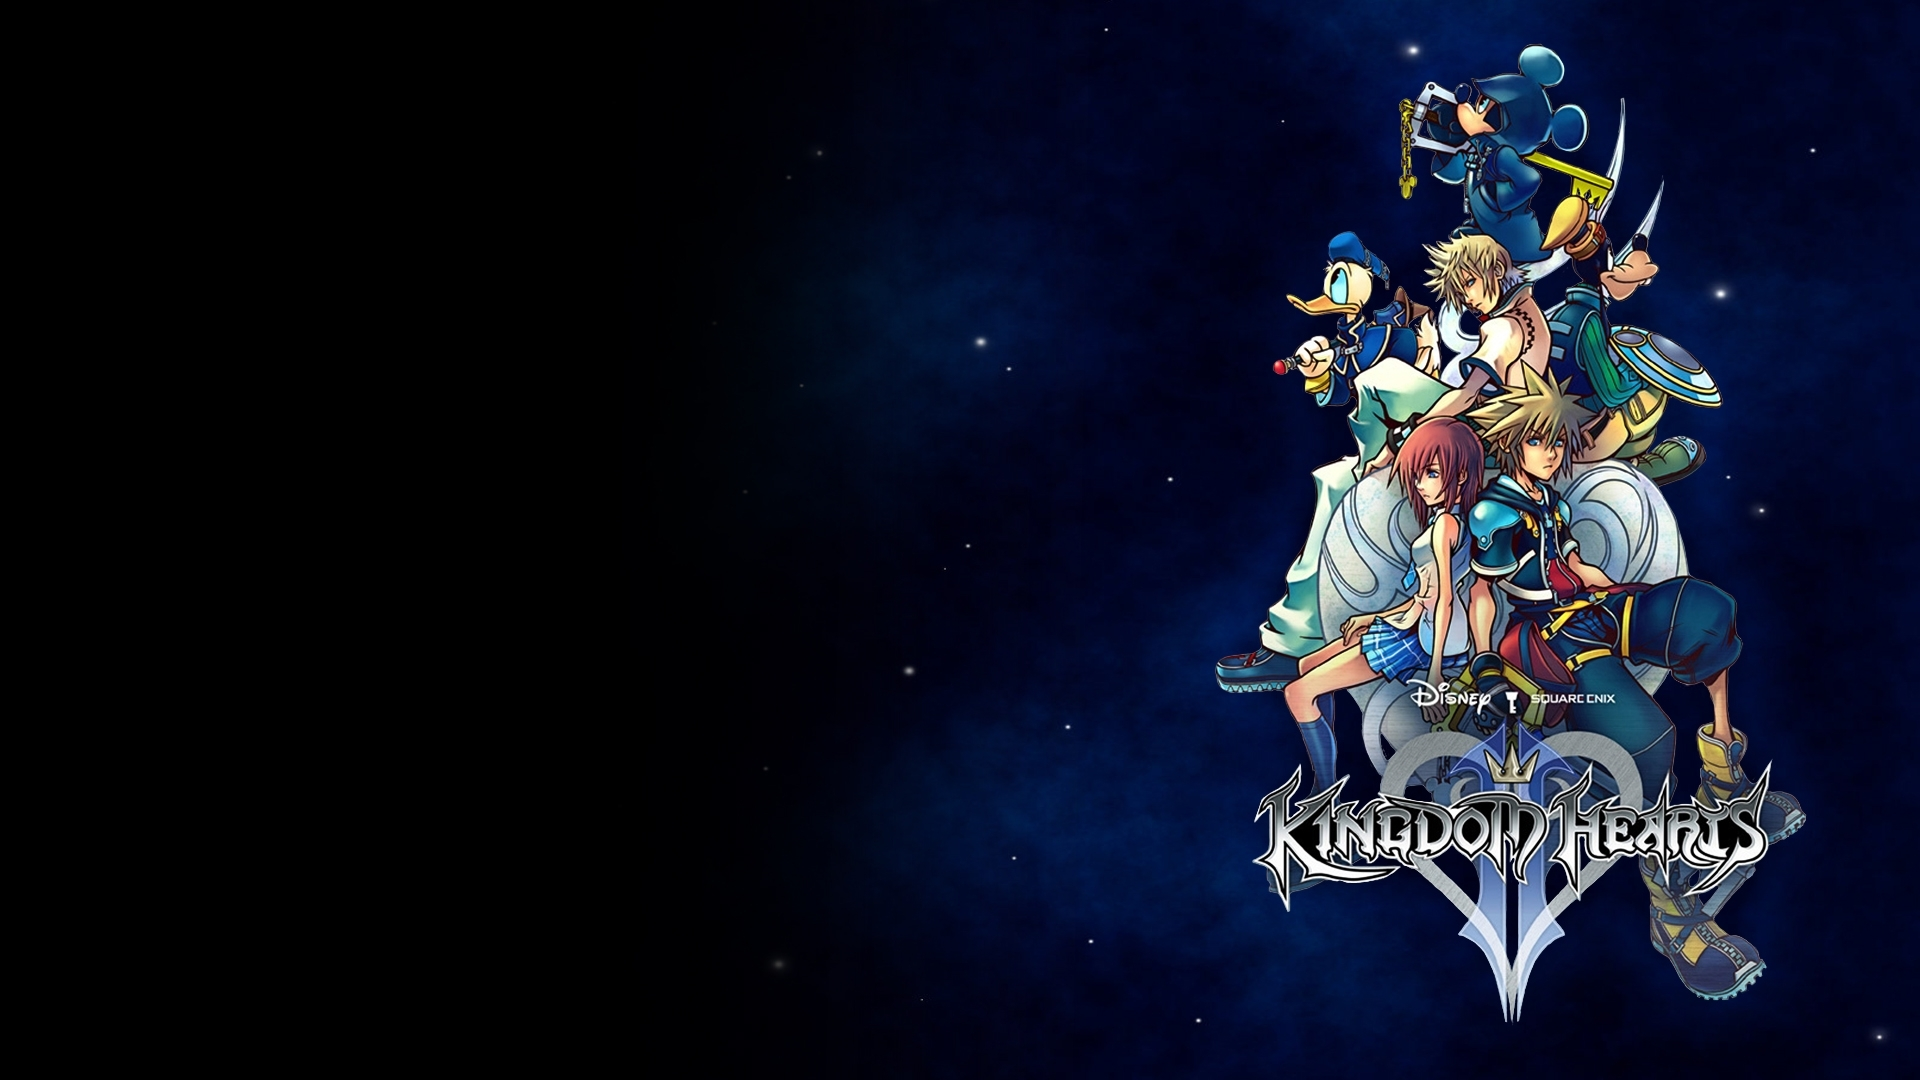 kingdom hearts ii wallpaper full hd wallpaper and background image